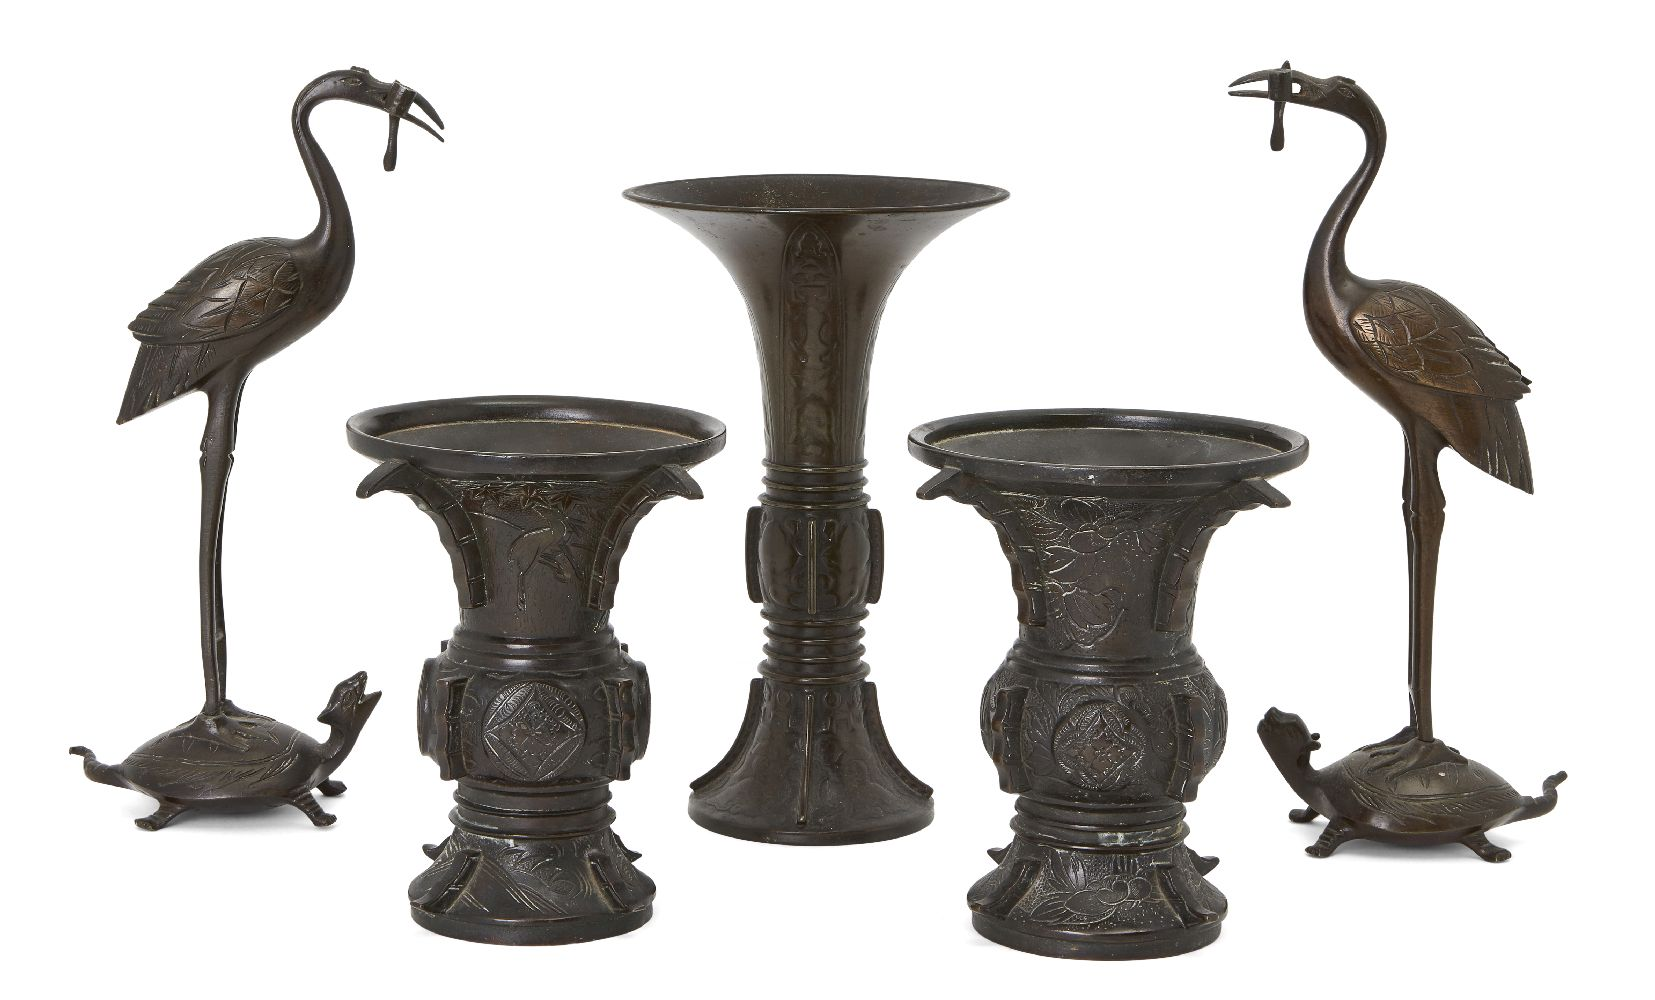 Five Japanese bronzes, Meiji period, comprising a pair of crane incense holders, 24cm high, a pair